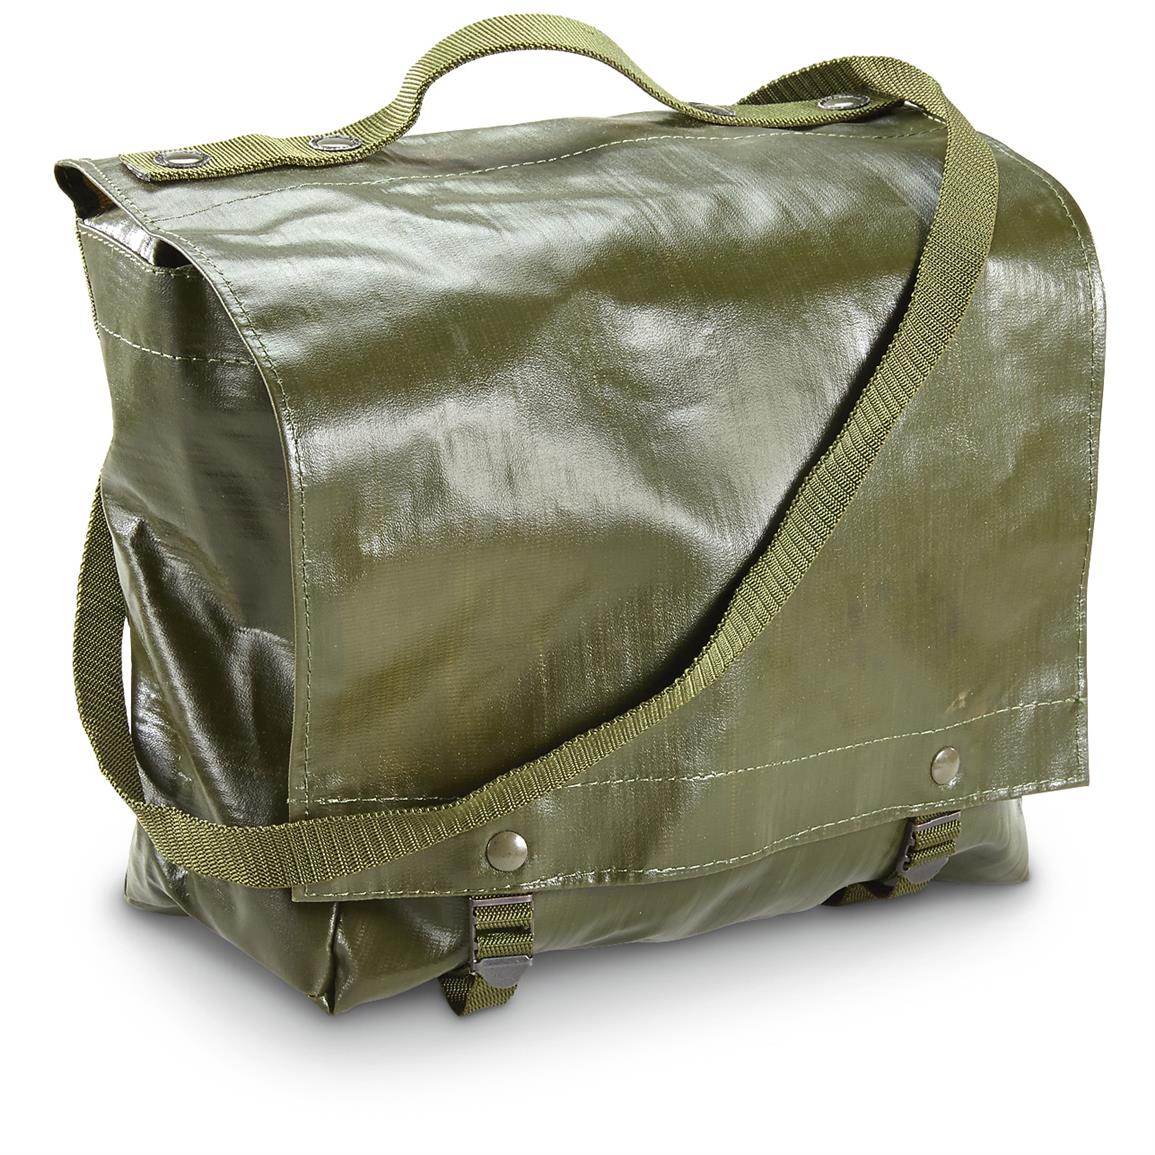 Czech Military Surplus Shoulder Bags, 4 Pack, New